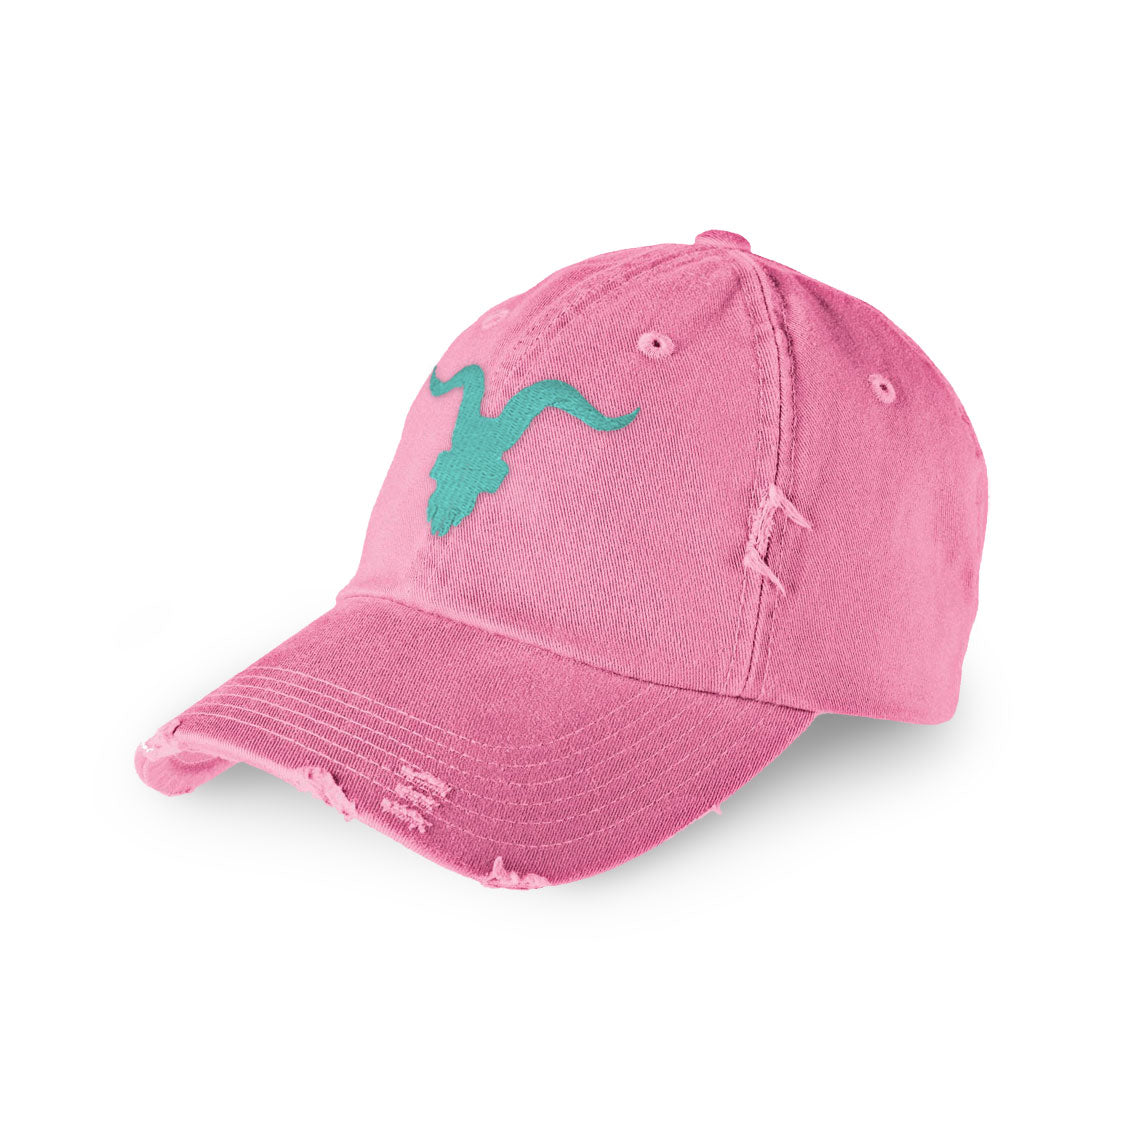 Ignite Premium Collection Distressed Dad Hat - Pink with Aqua Logo